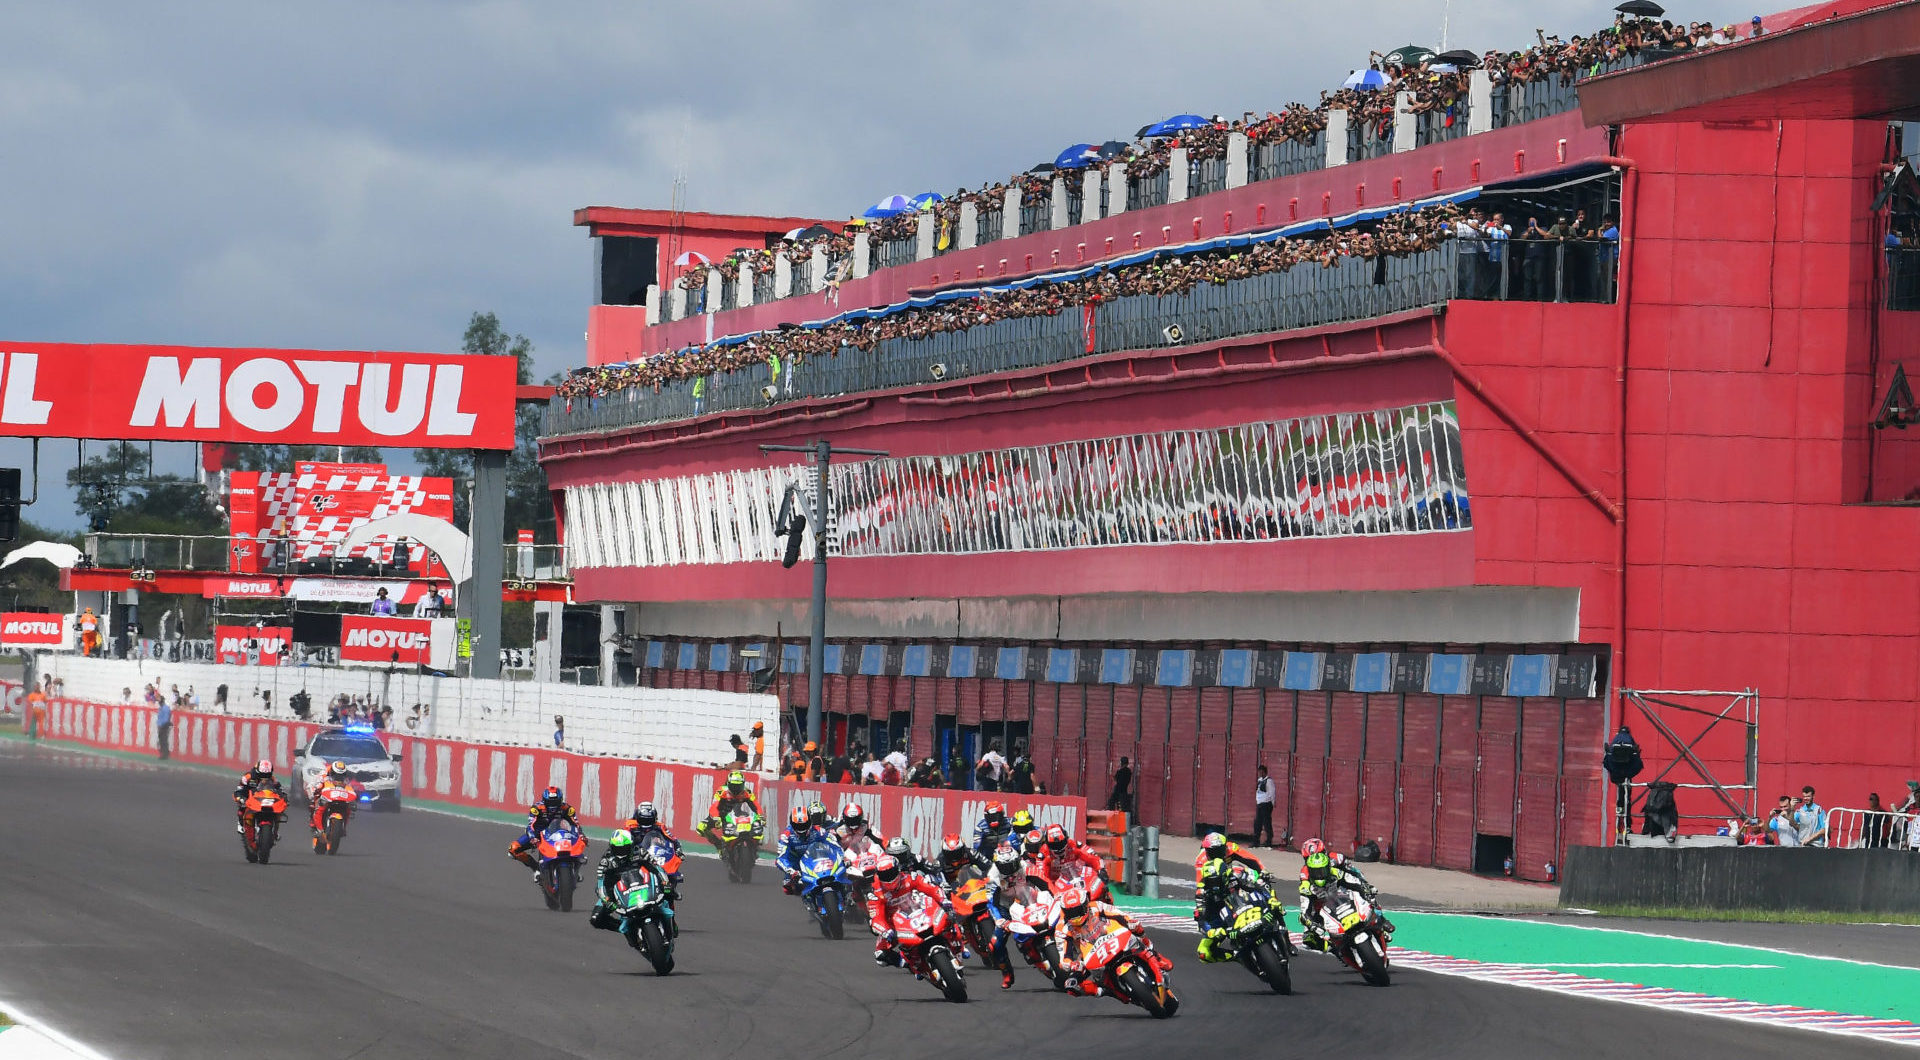 The start of the MotoGP race at Autodrome Termas de Rio Hondo in 2019 with the pit lane garage building in the background. Photo courtesy Michelin.